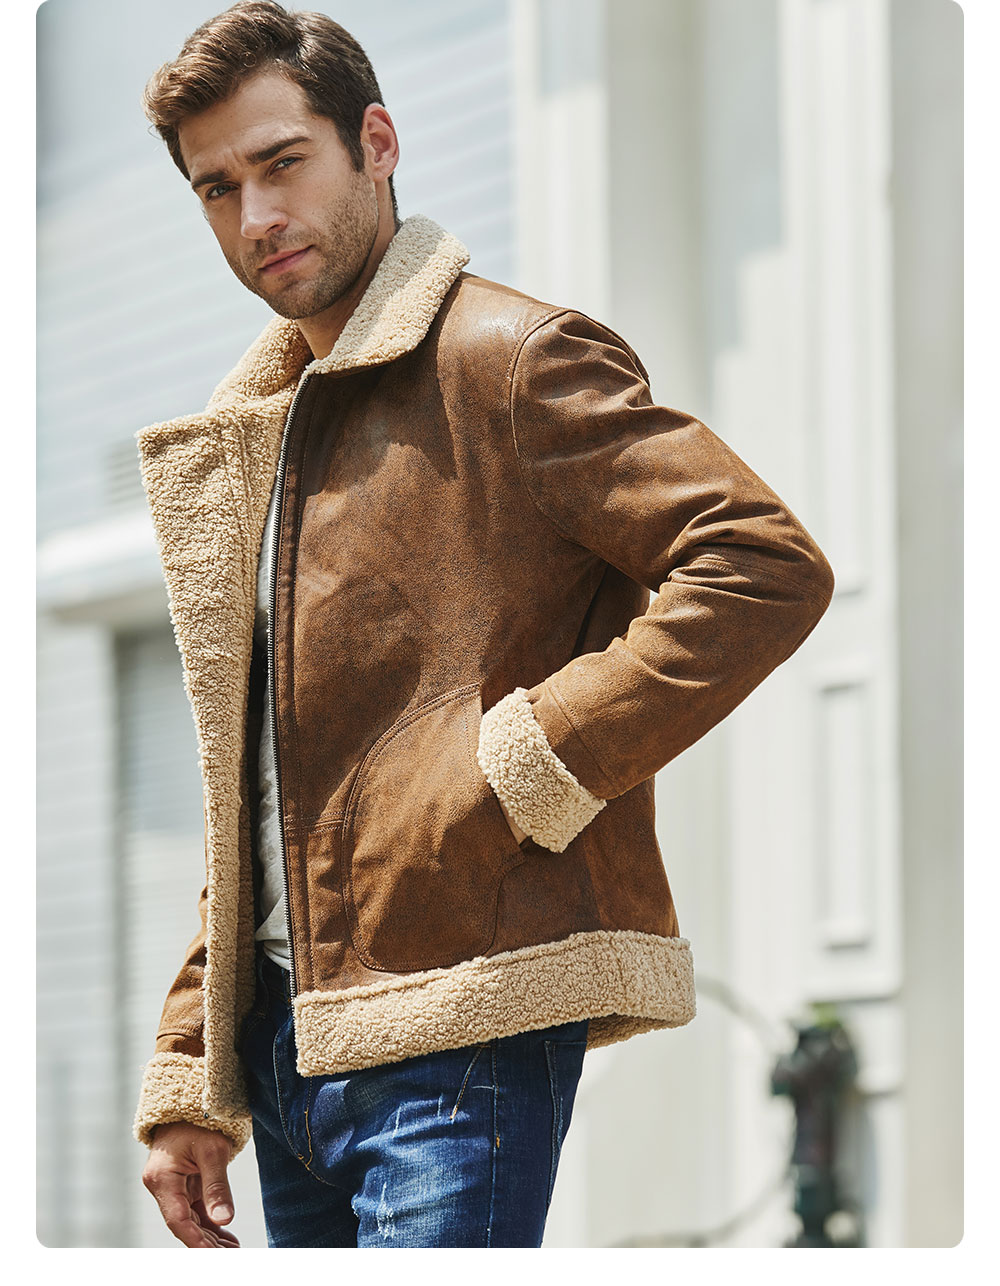 H3353230c5633420abb266139ecb3aba2E New Men's Real Leather Jacket Faux Fur Collar Genuine Leather Jacket